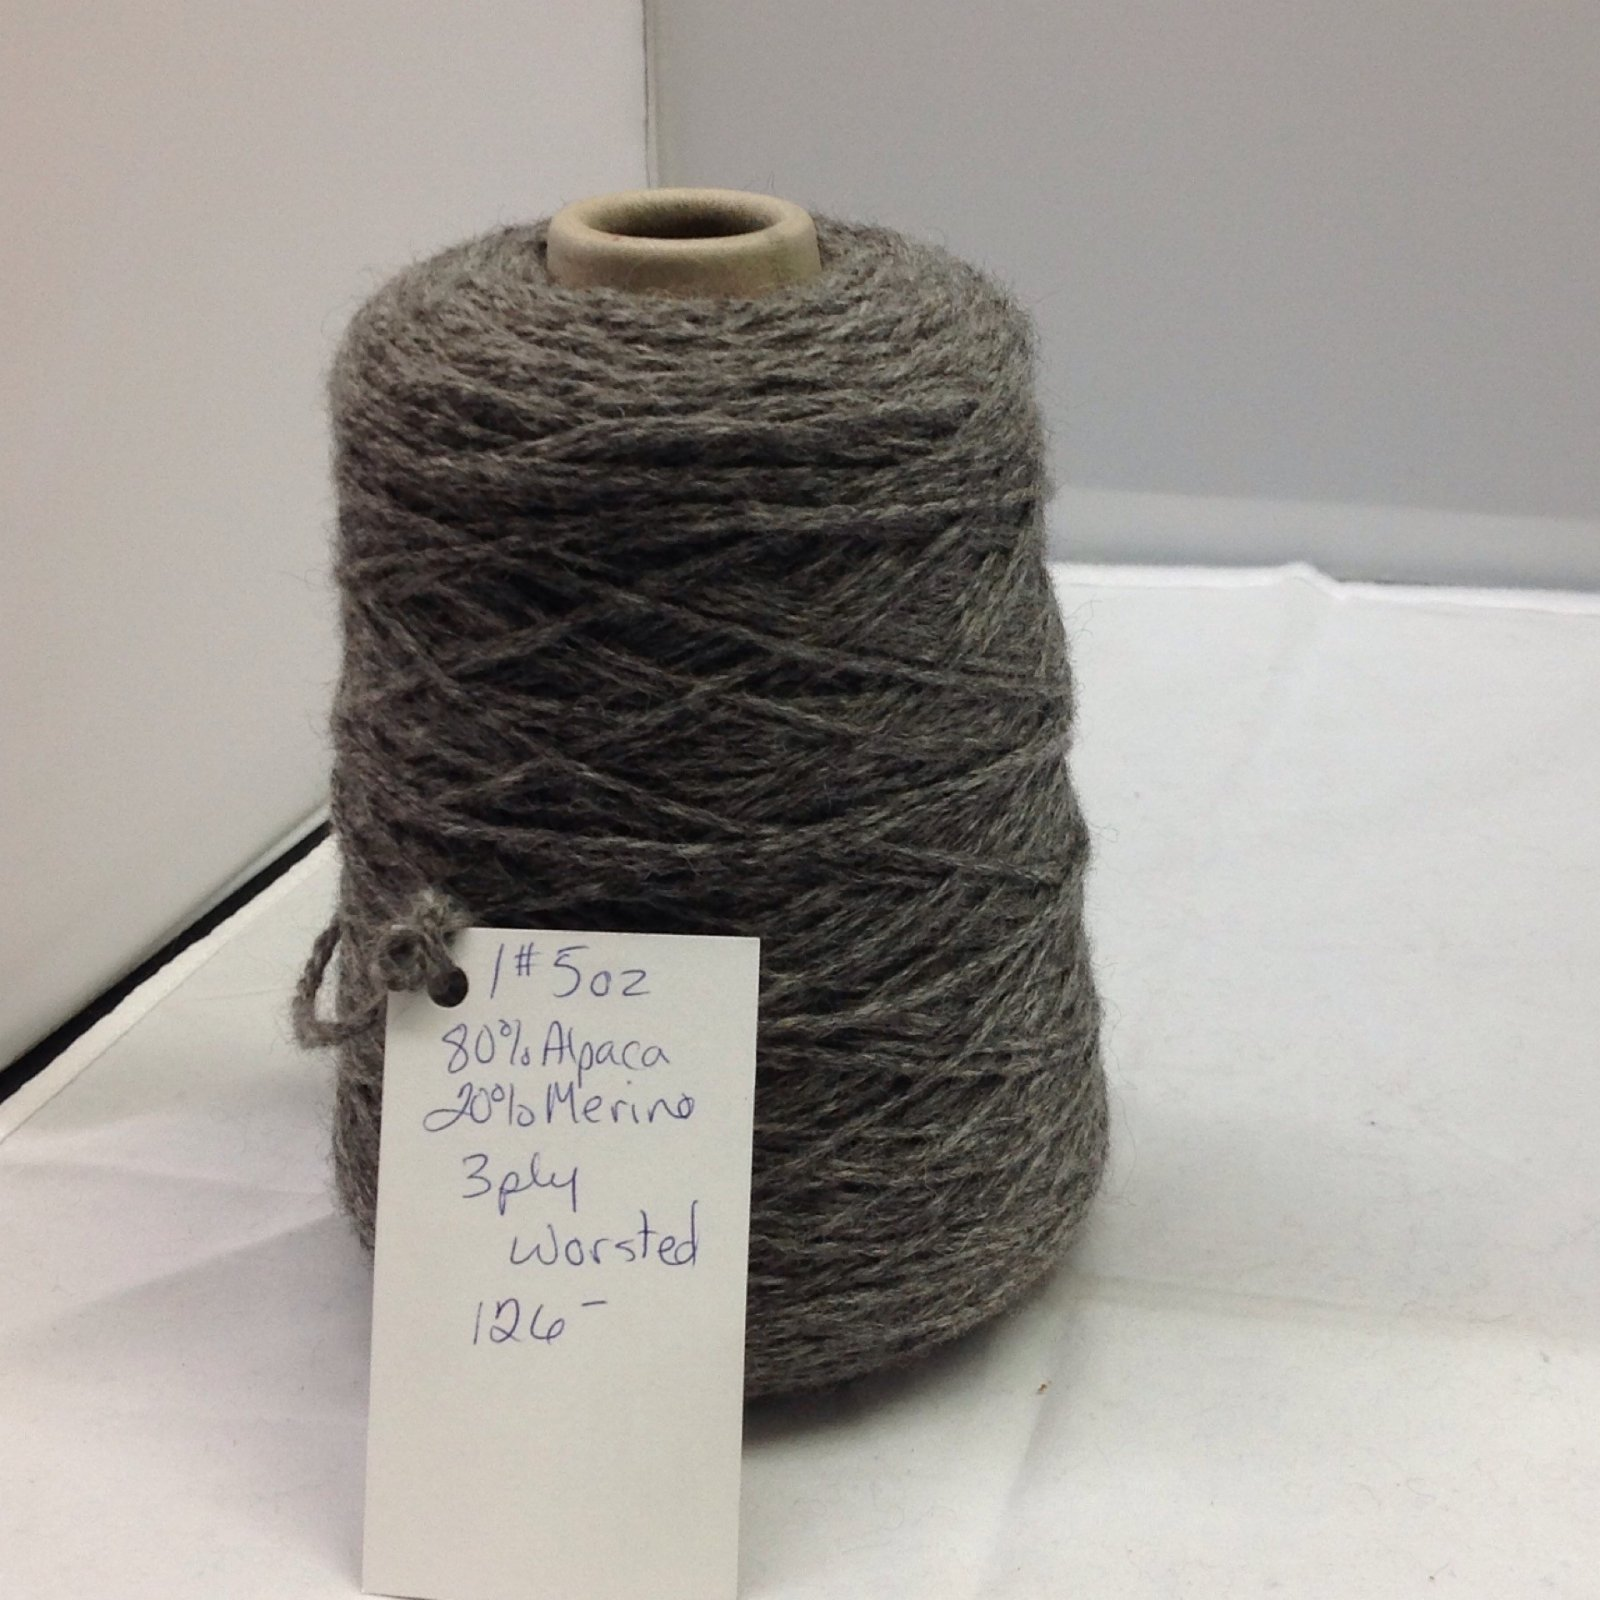 3 Ply Worsted Cone